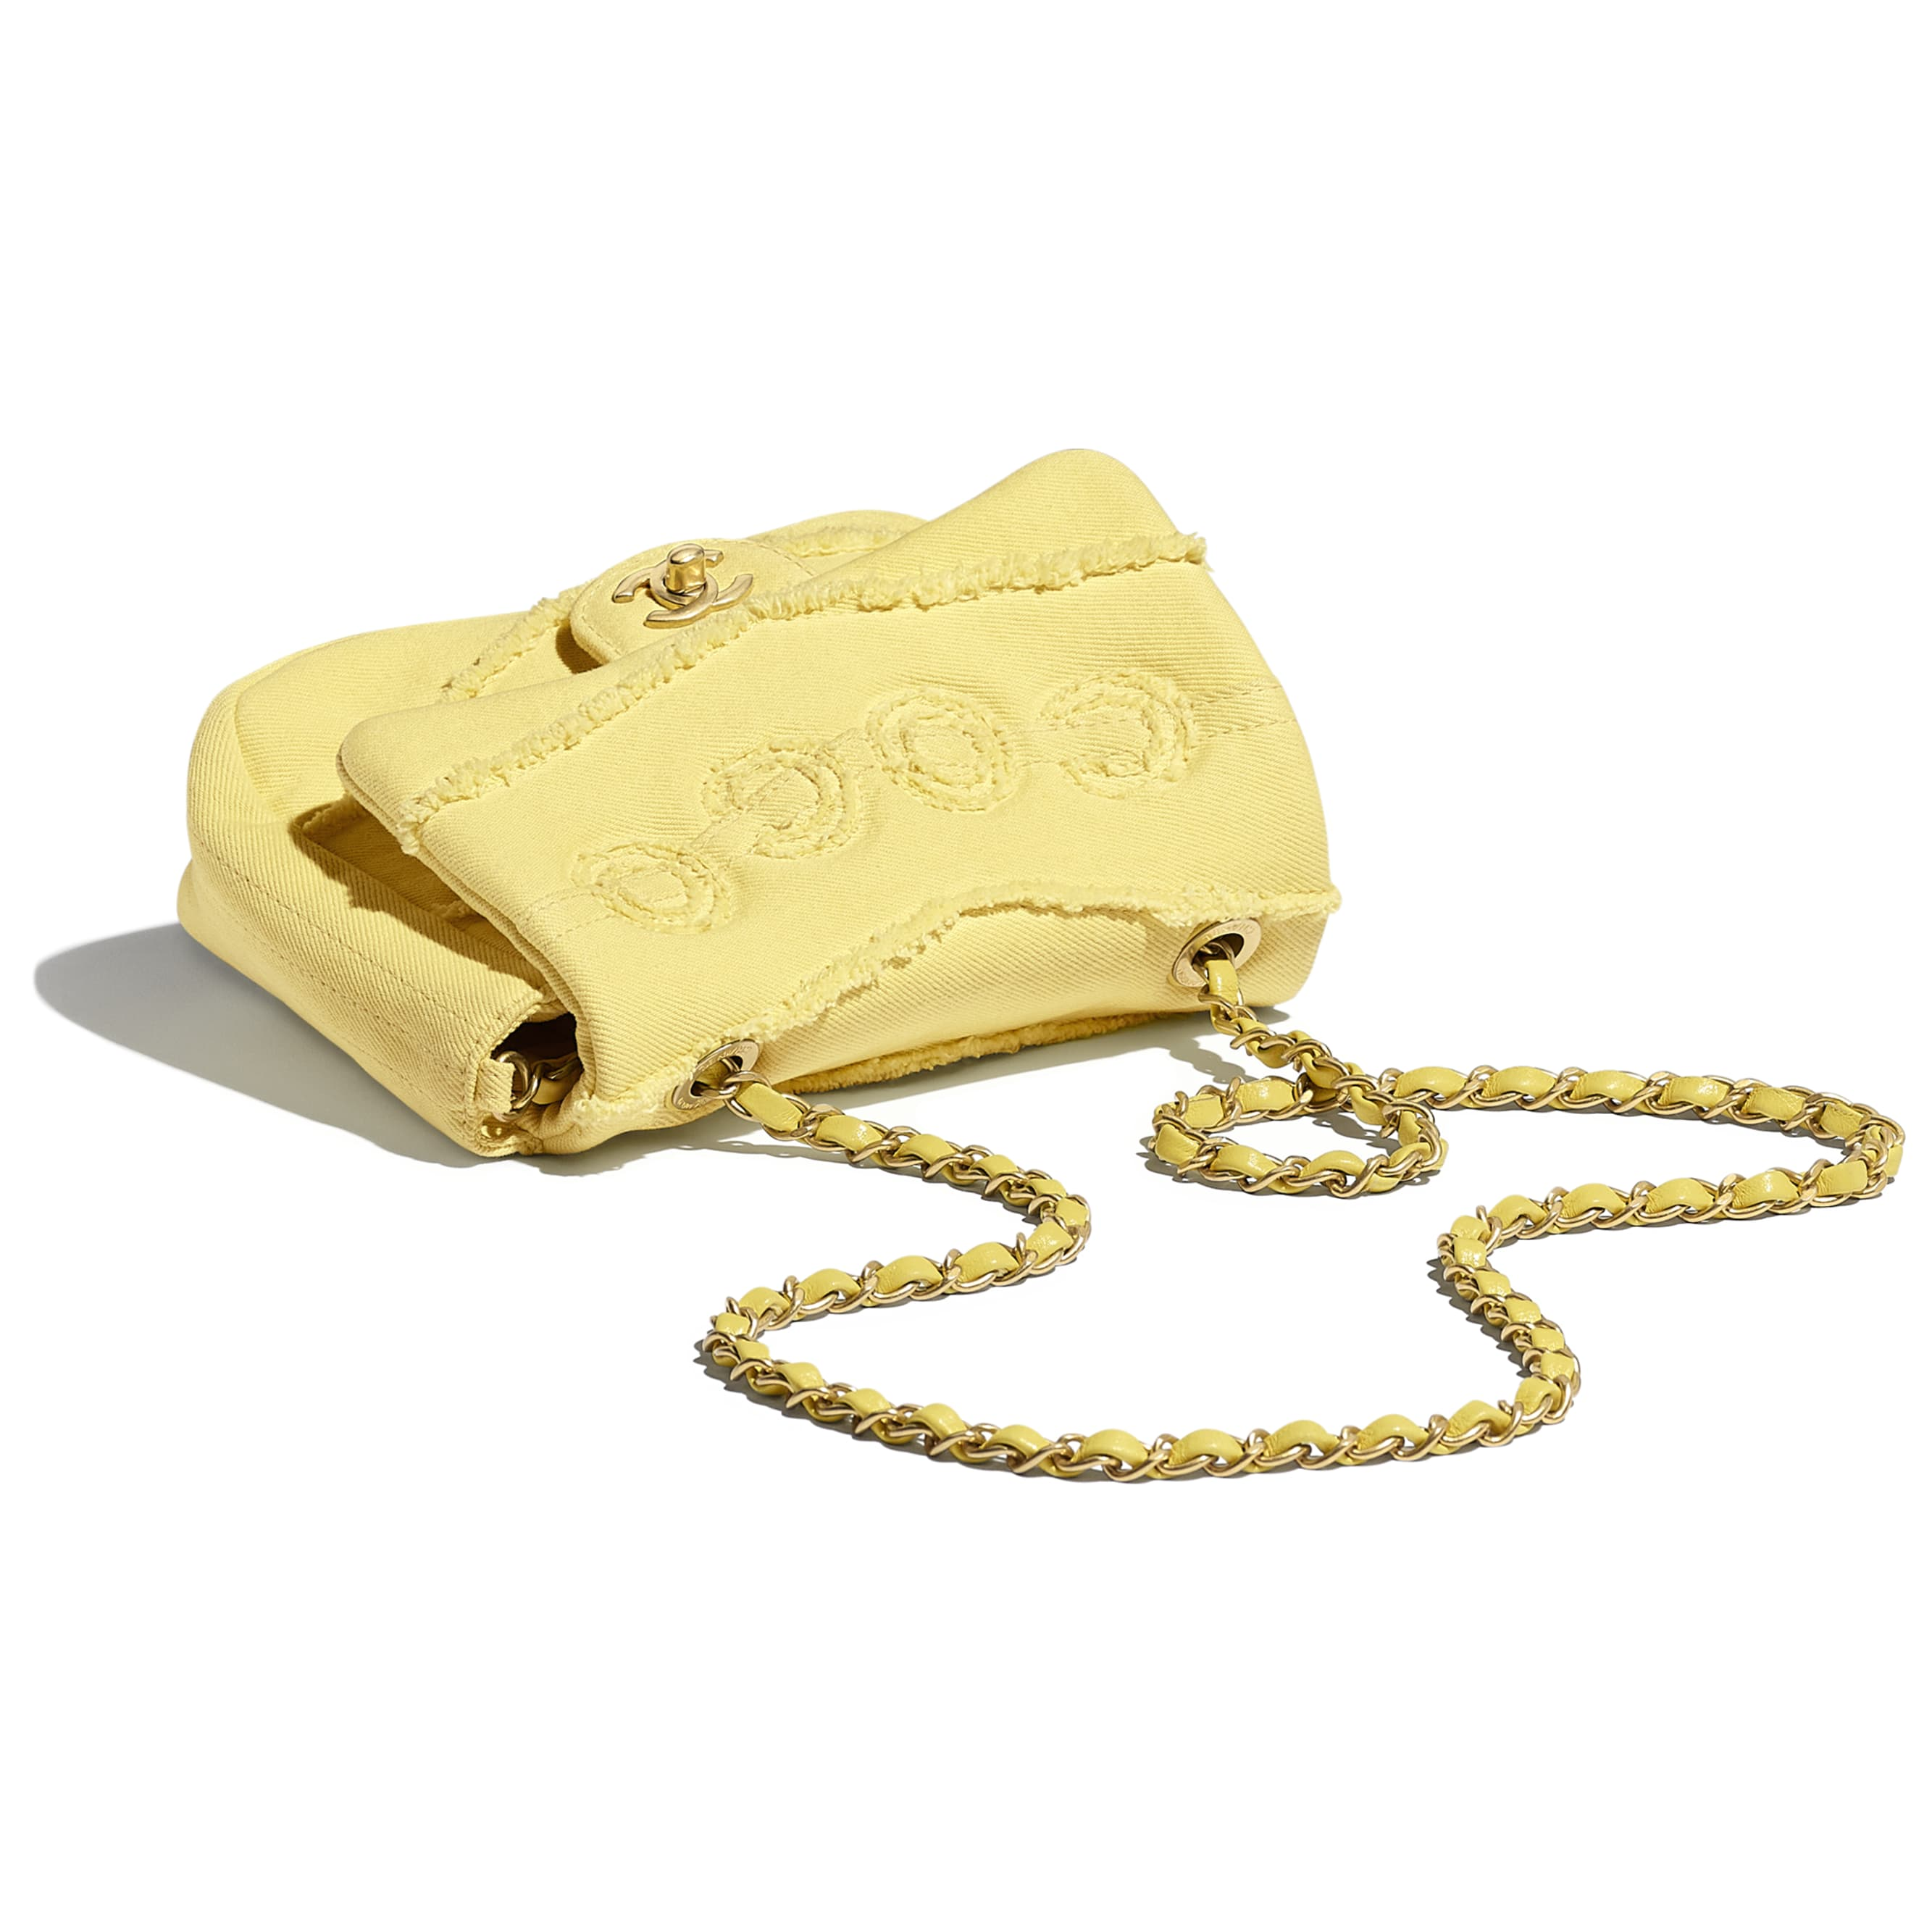 Small Flap Bag - Yellow - Denim & Gold-Tone Metal - CHANEL - Extra view - see standard sized version